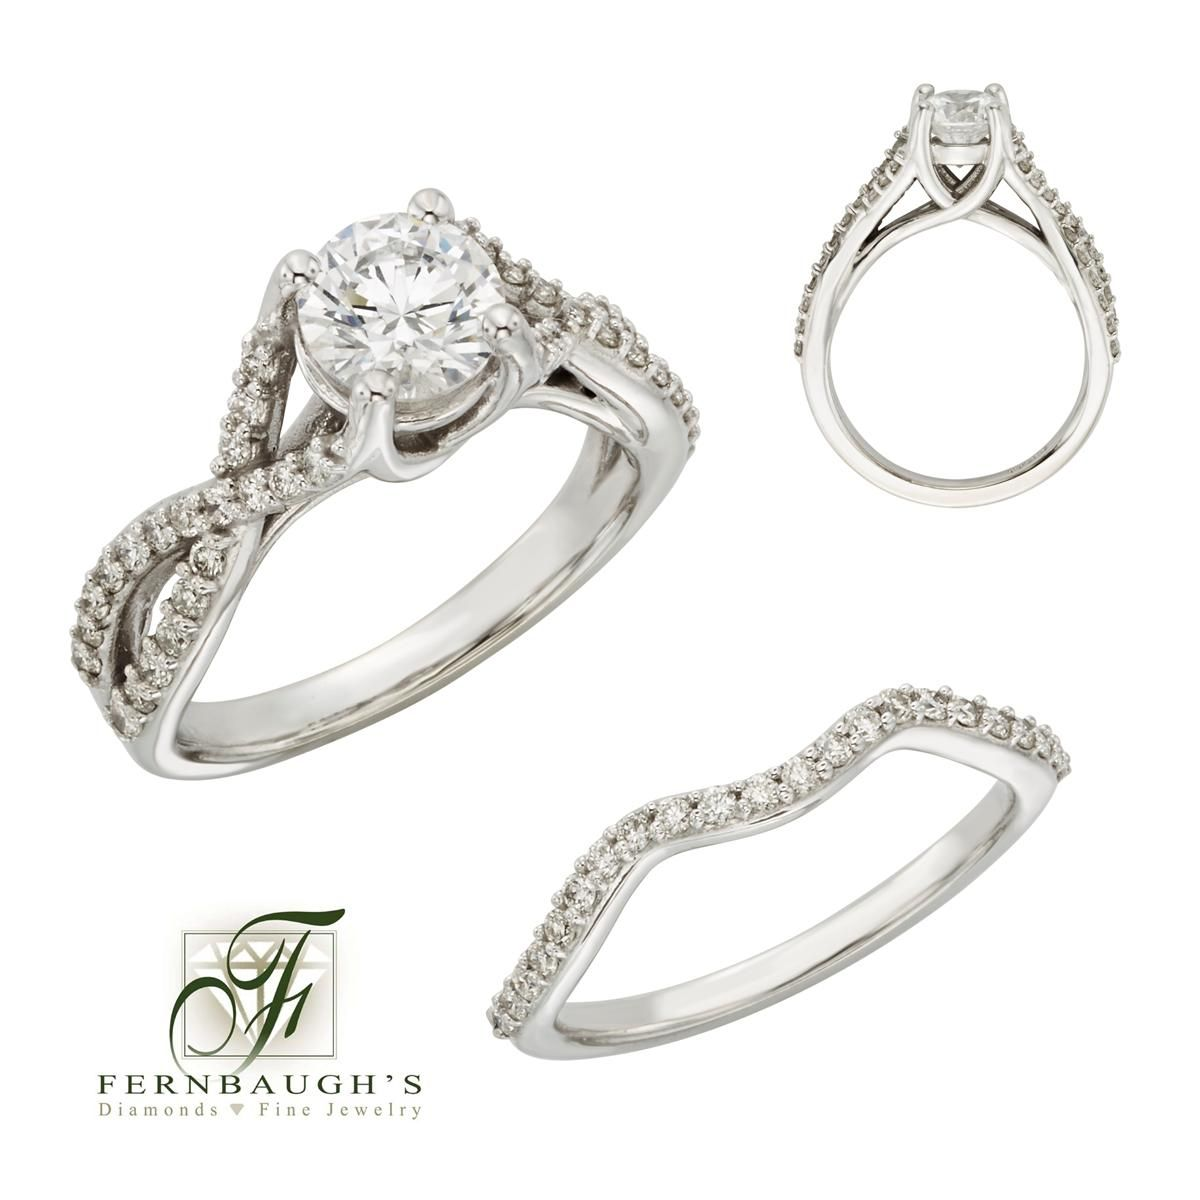 14K White Gold Wedding Set 1carat center 5/8 carat total weight (12A)